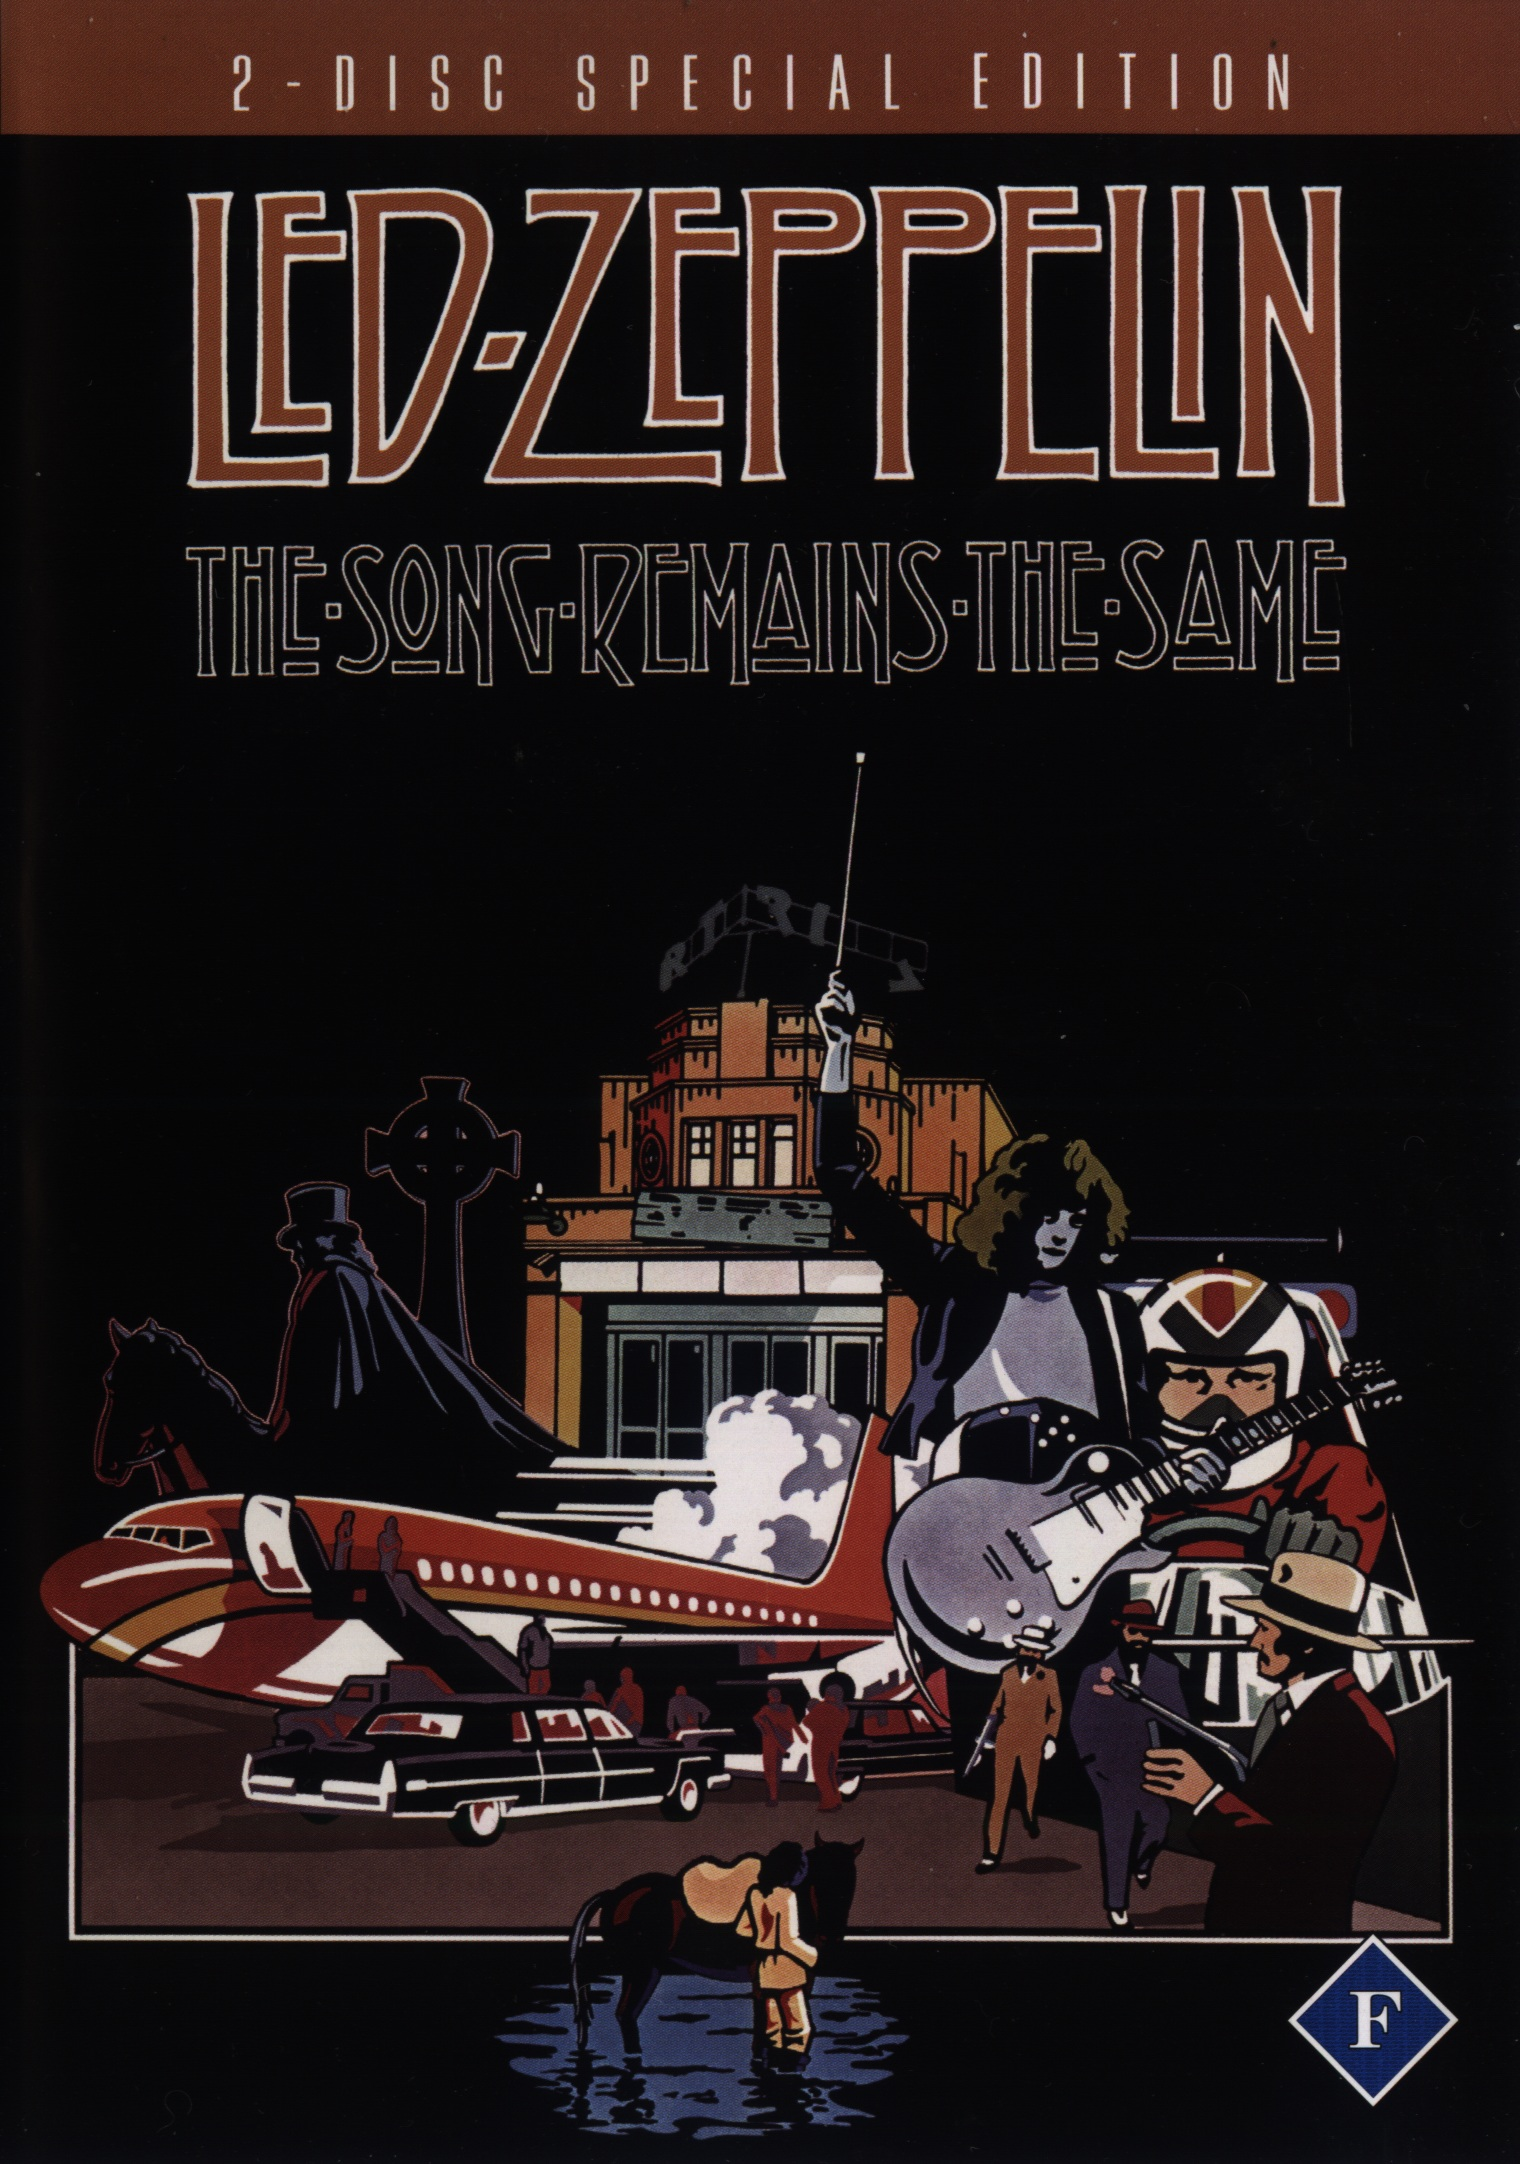 Led Zeppelin: The Song Remains The Same